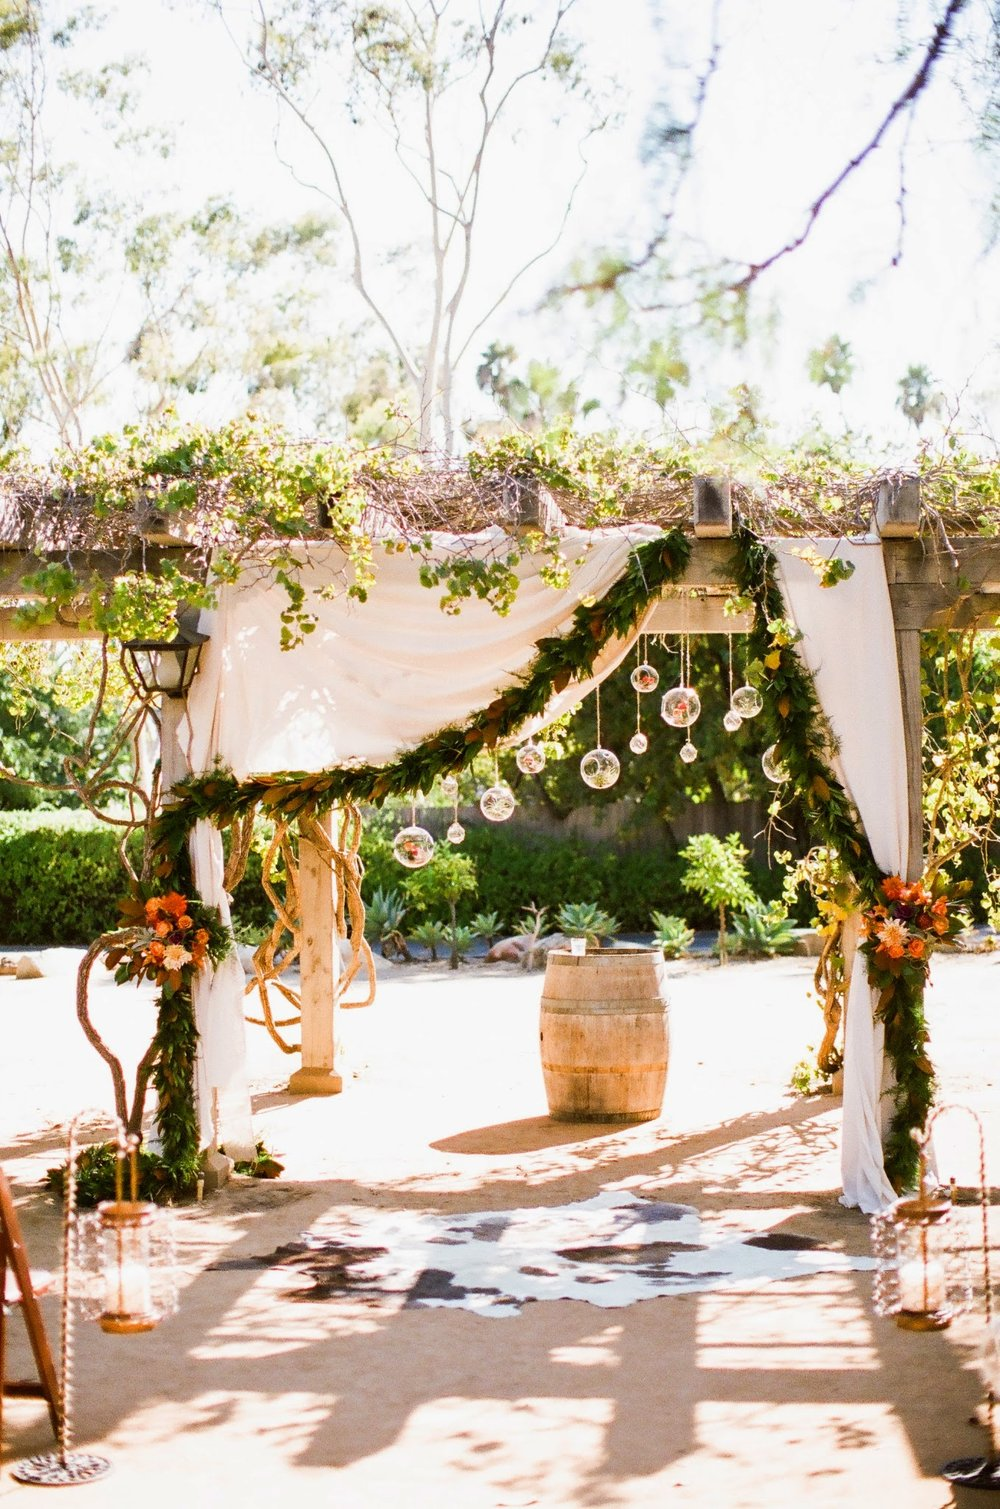 www.felicievents.com | Felici Events | Historical Museum Wedding | Eclectic Orange Wedding | Ceremony Altar Decor